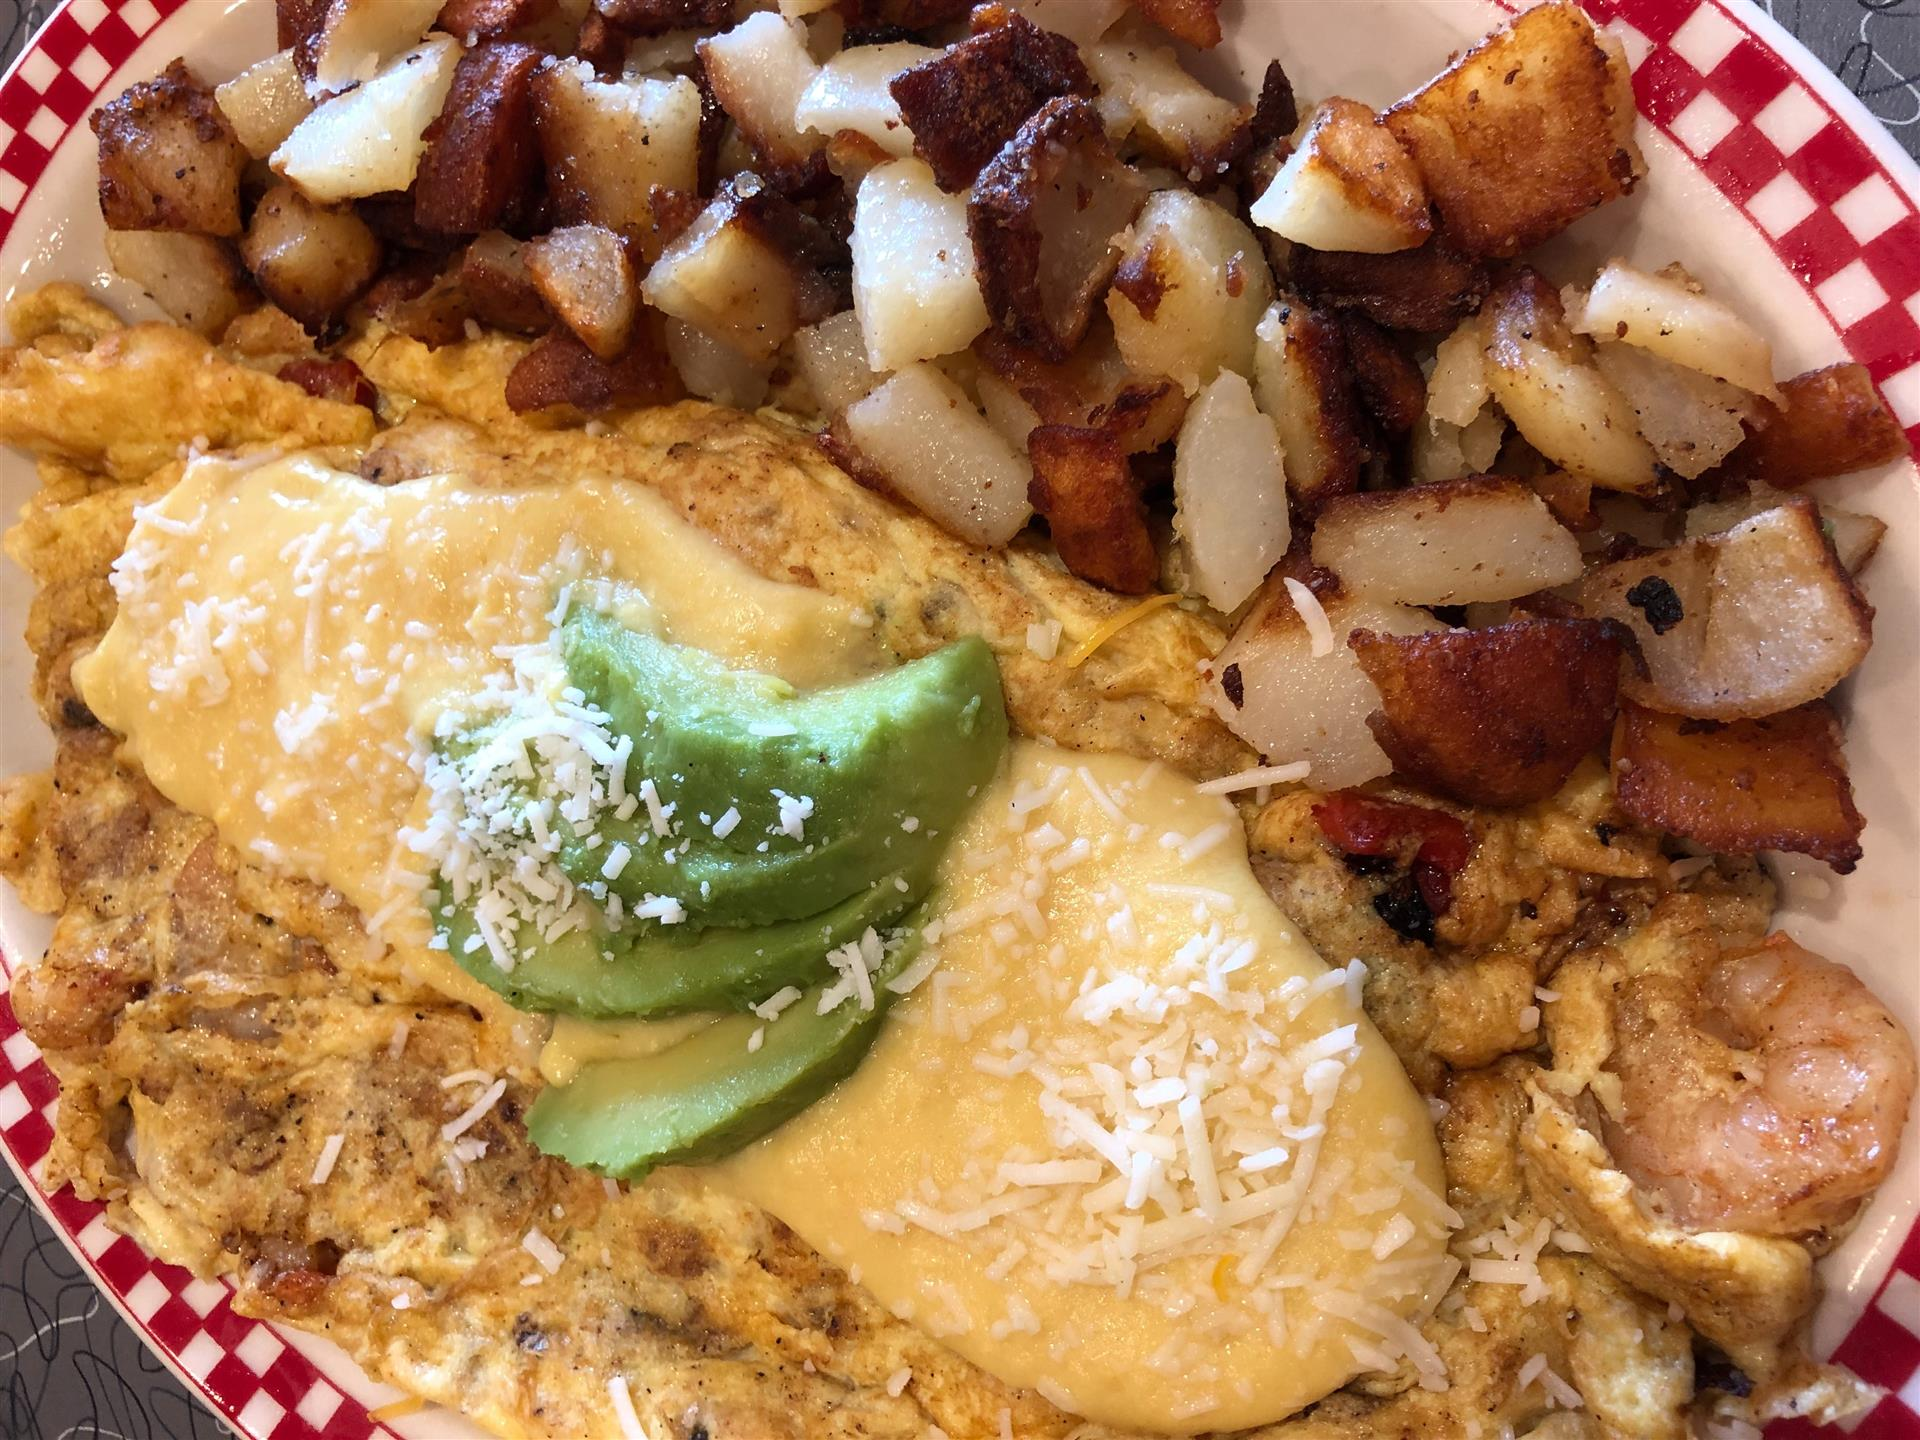 a seafood omelet with a side of home fries